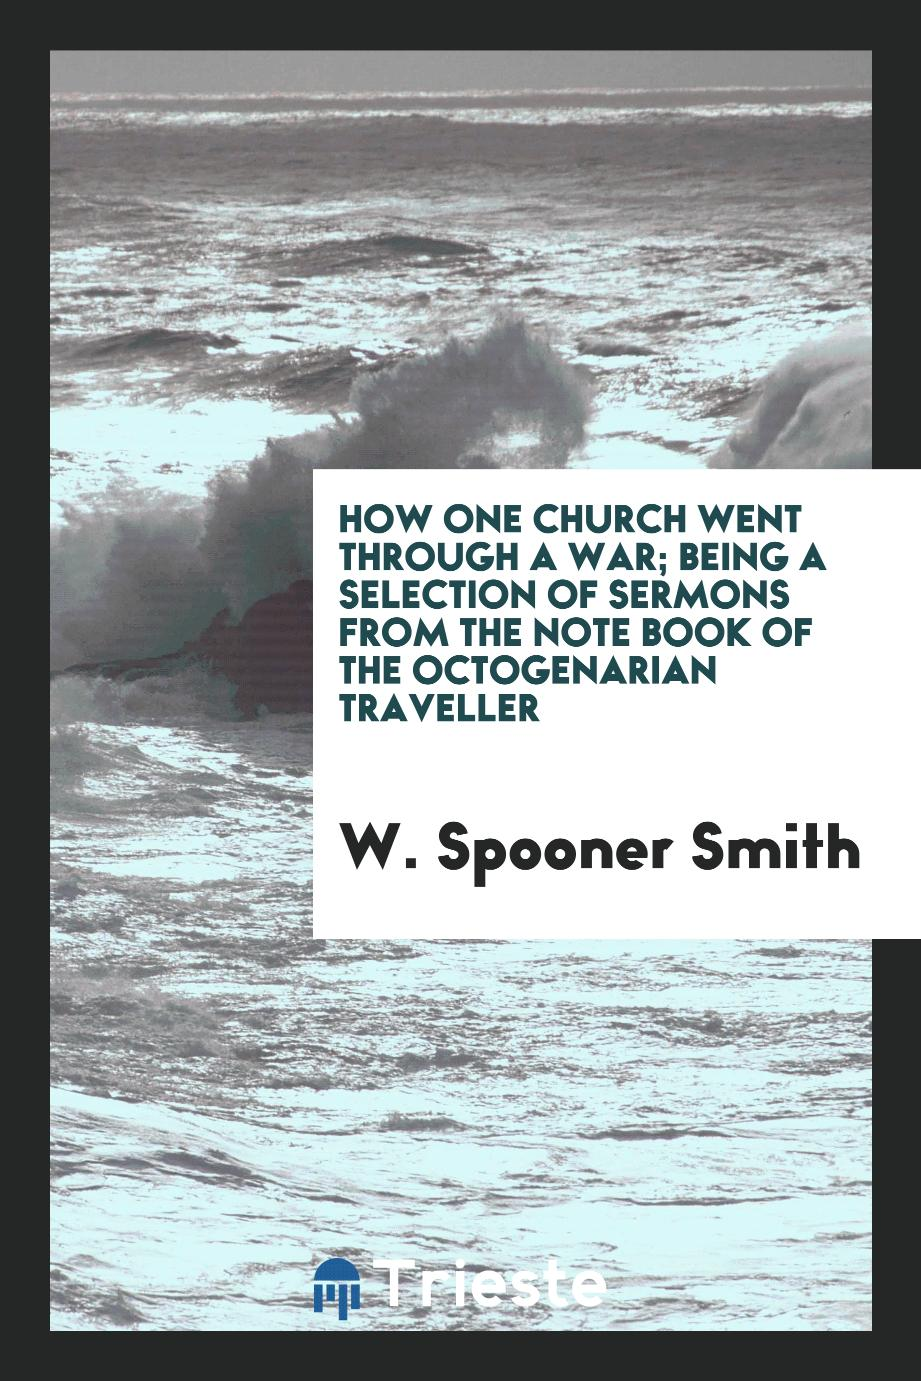 How one church went through a war; being a selection of sermons from the note book of the octogenarian traveller